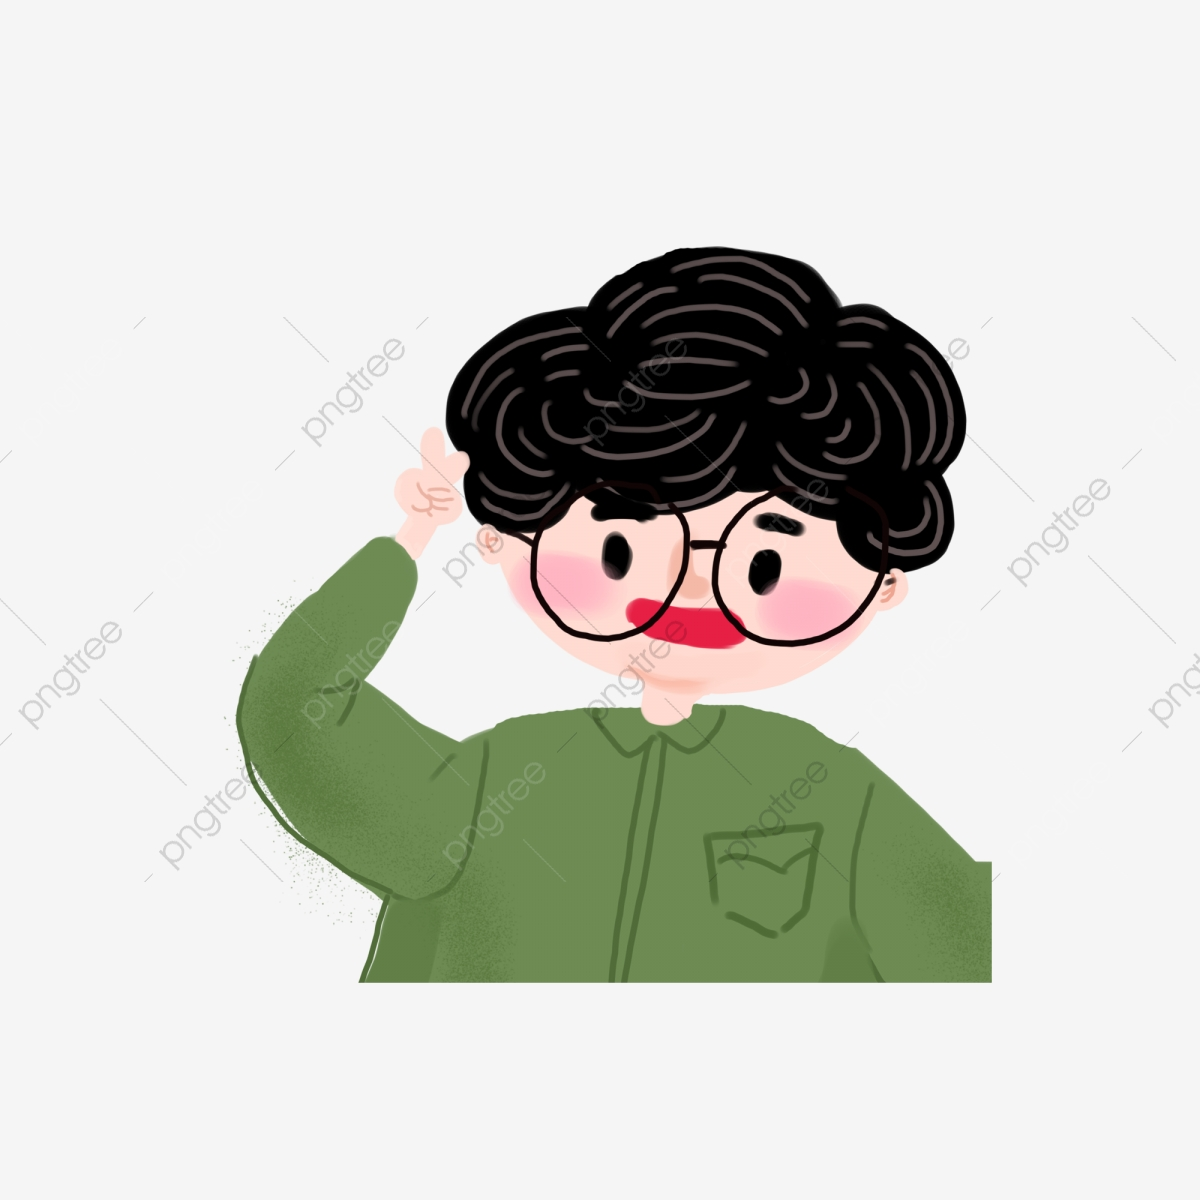 Boy With Curly Hair Wearing Glasses Cartoon Element Book Angry Wear Glasses Boy Png Transparent Clipart Image And Psd File For Free Download